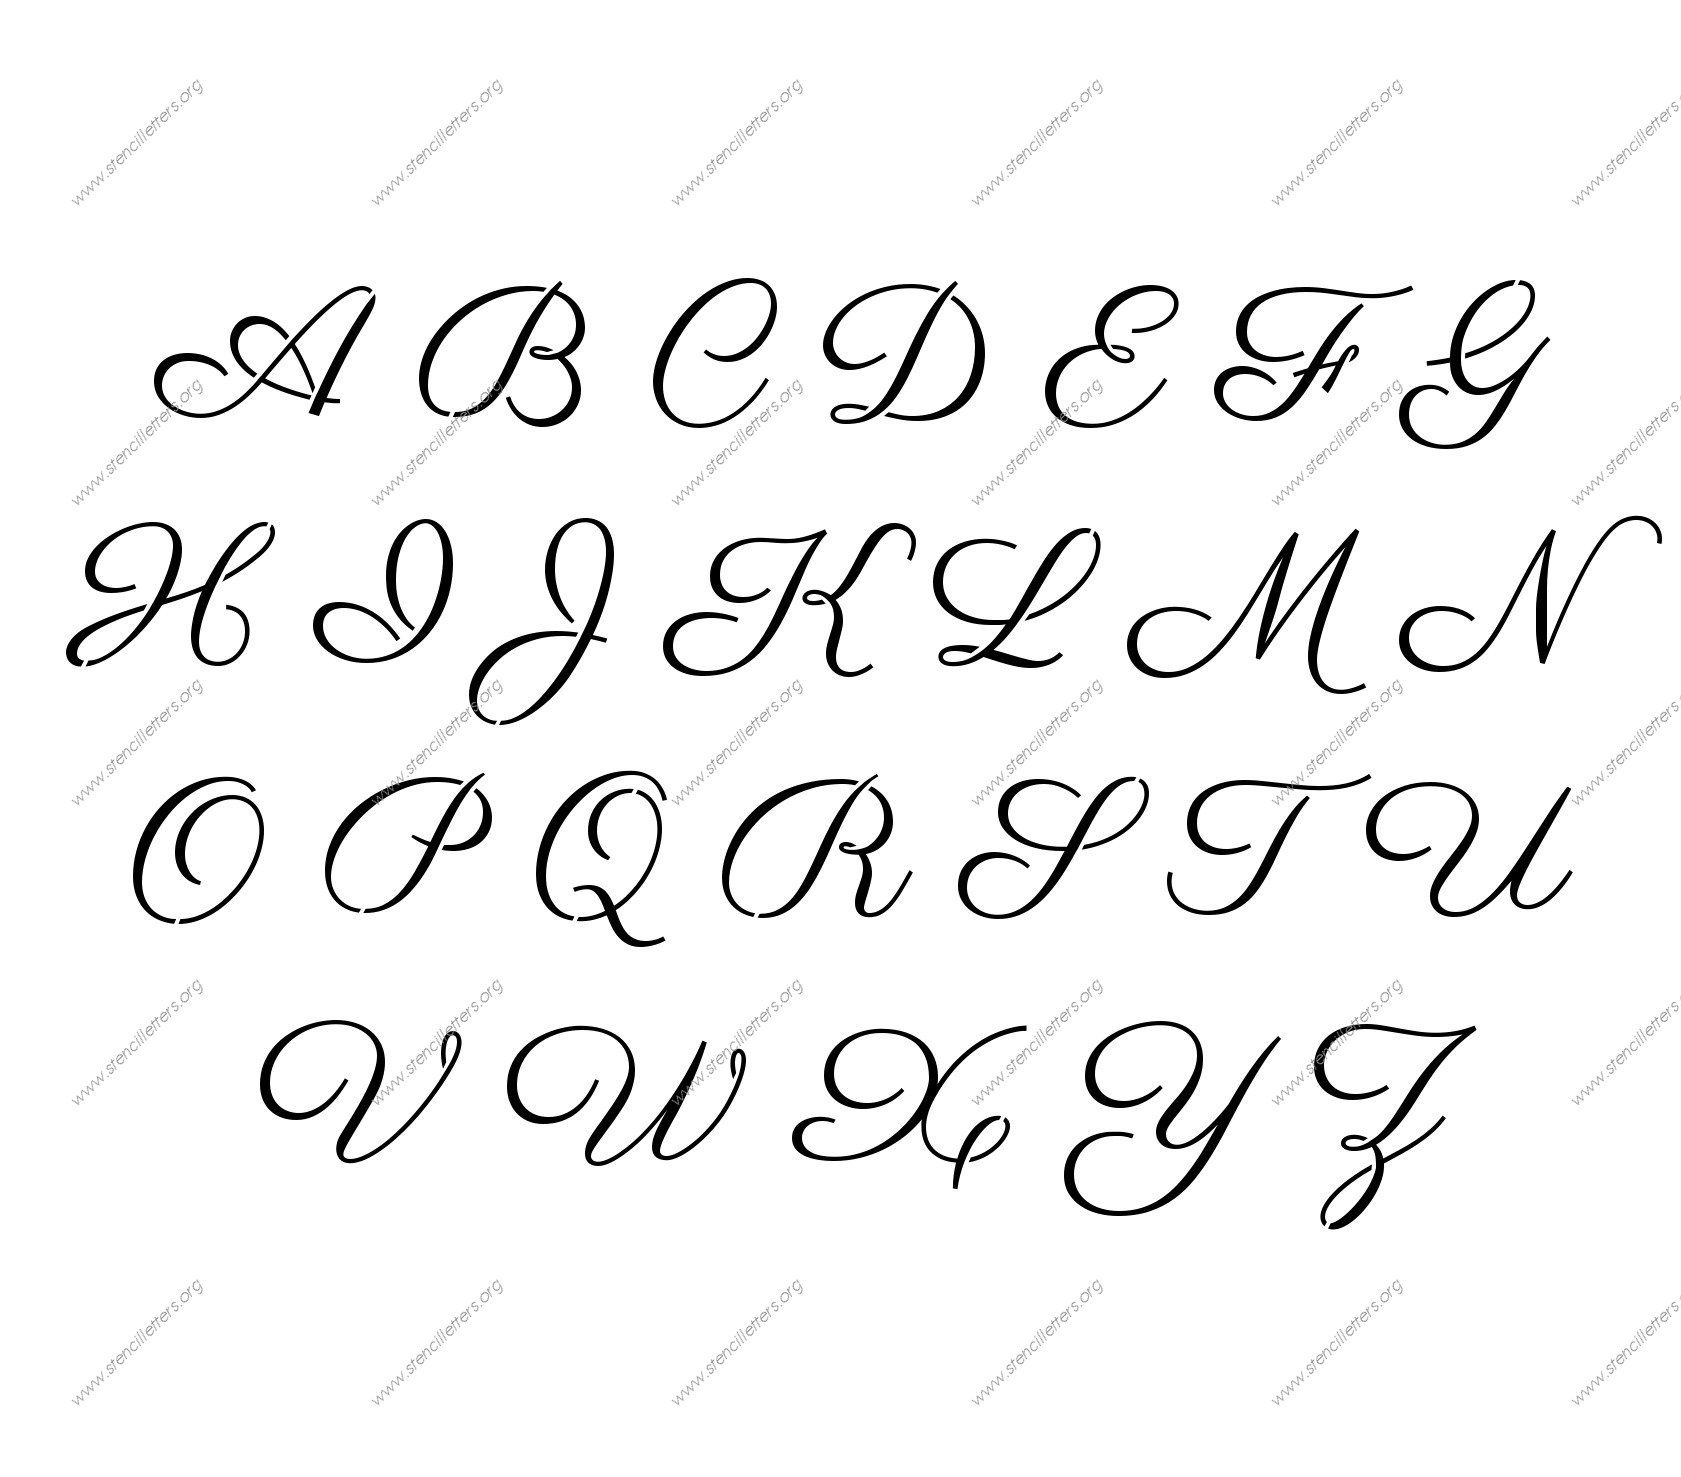 Free Printable Alphabet Stencil Letters Template | Art & Crafts - Free Printable Fonts Stencils